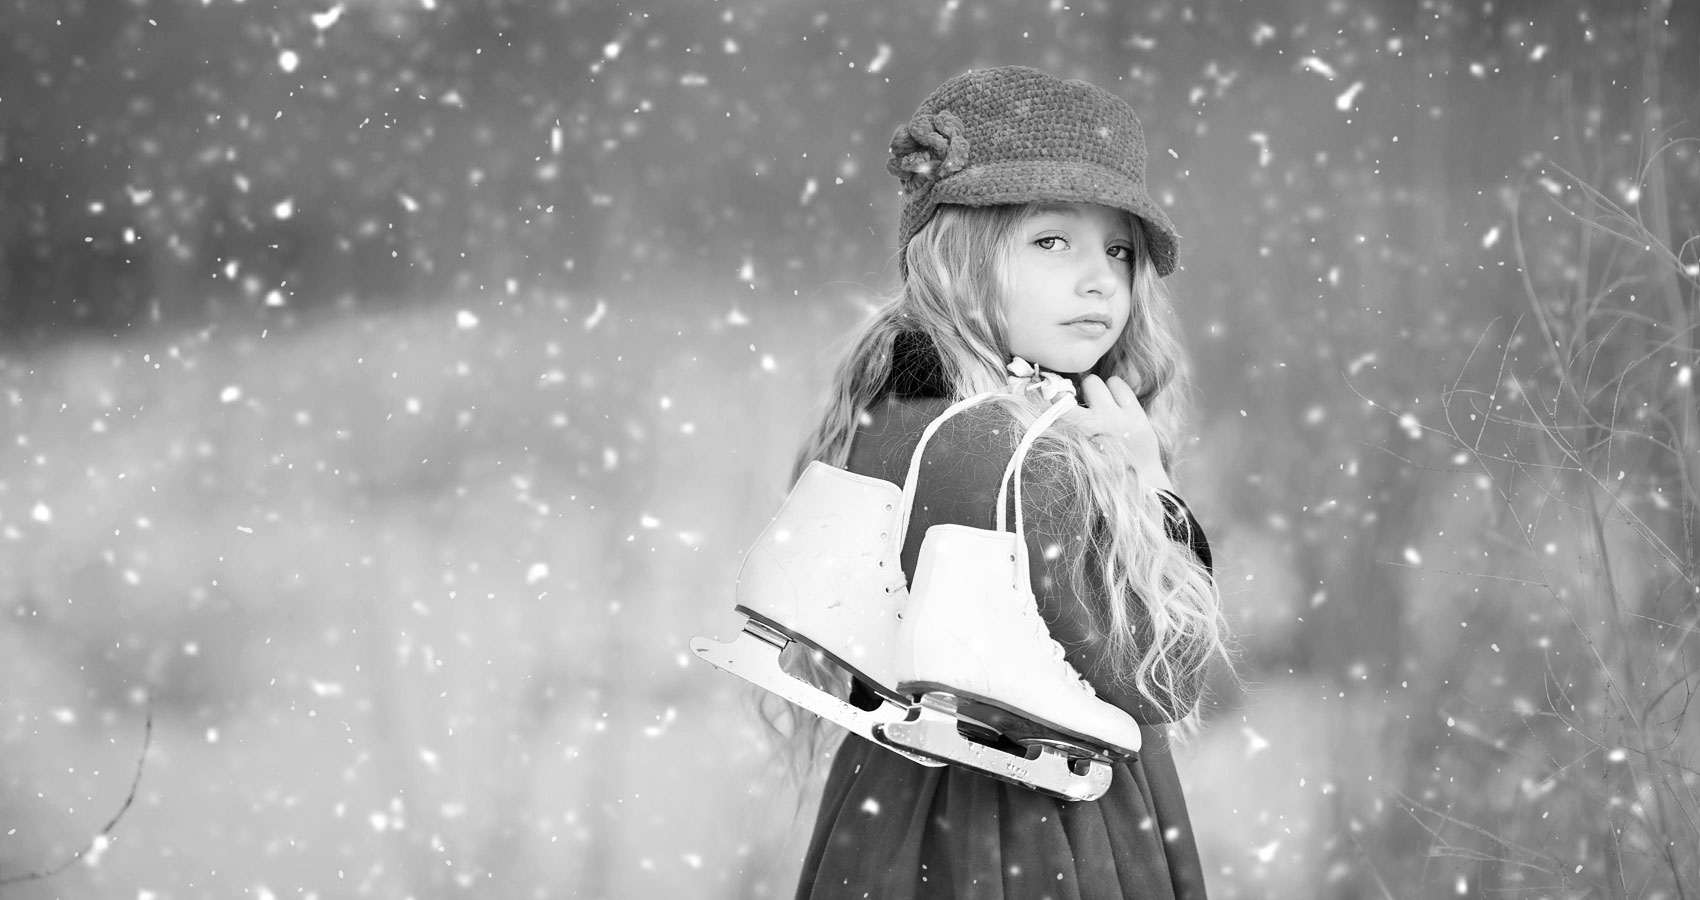 Winters Long Ago, a poem written by Ruth Owens at Spillwords.com